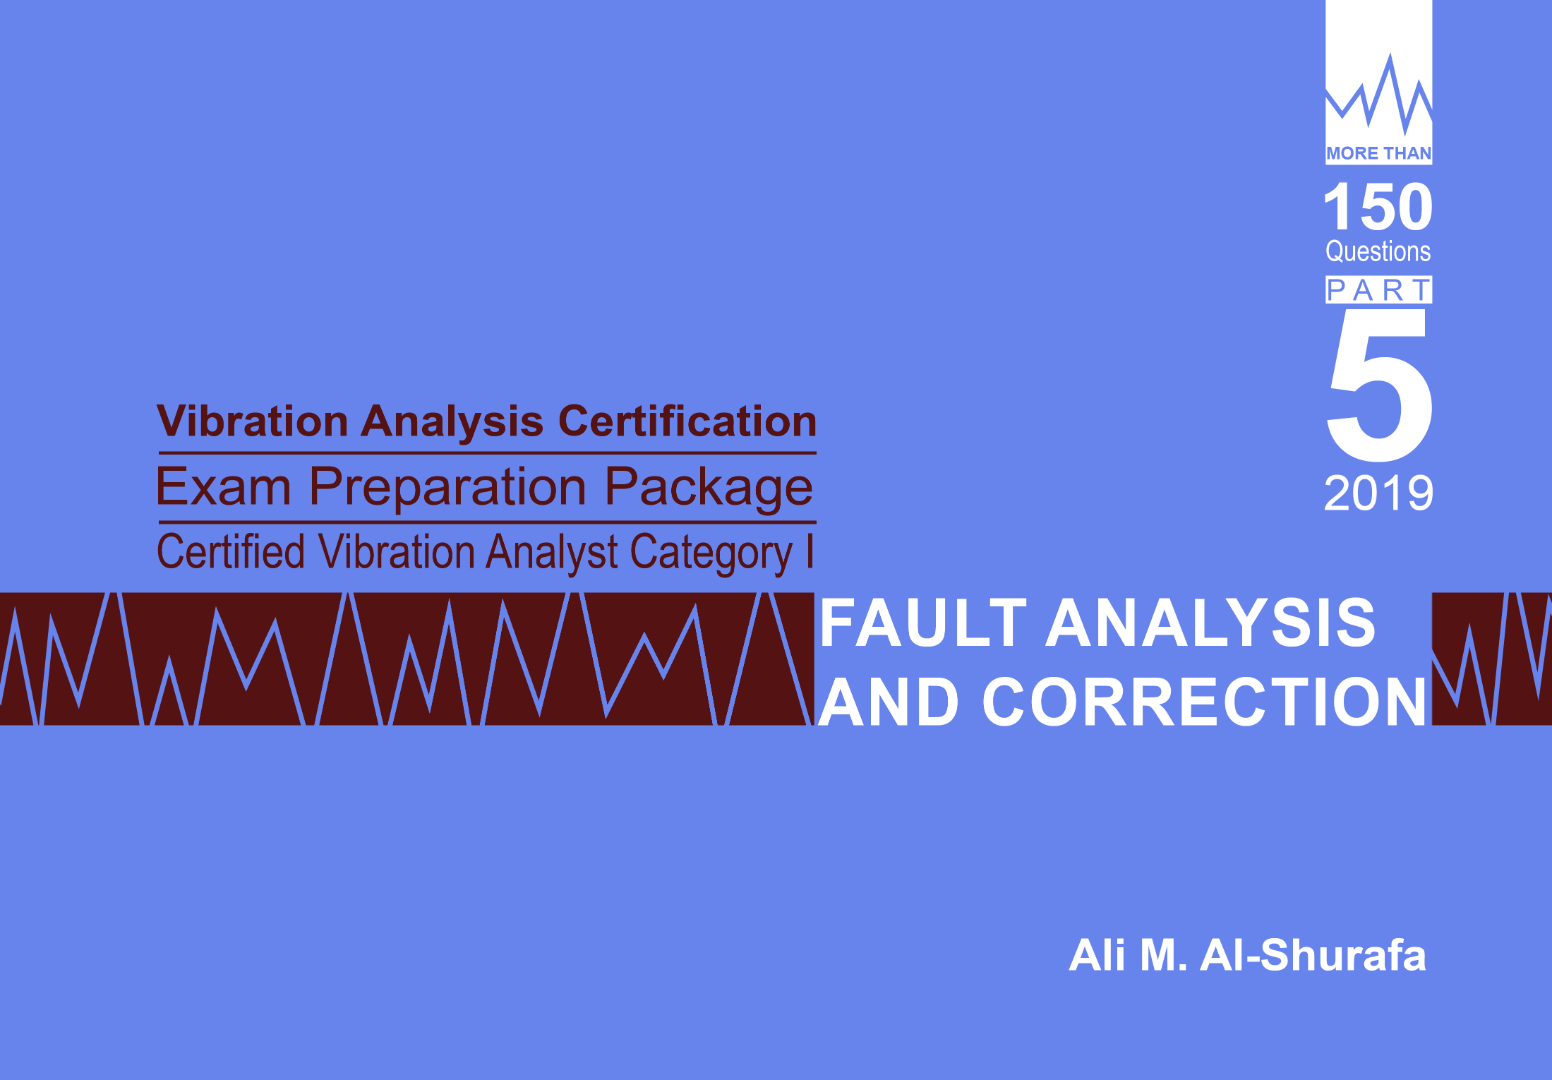 Vibration Analysis Certification Exam Preparation Package Certified Vi.png